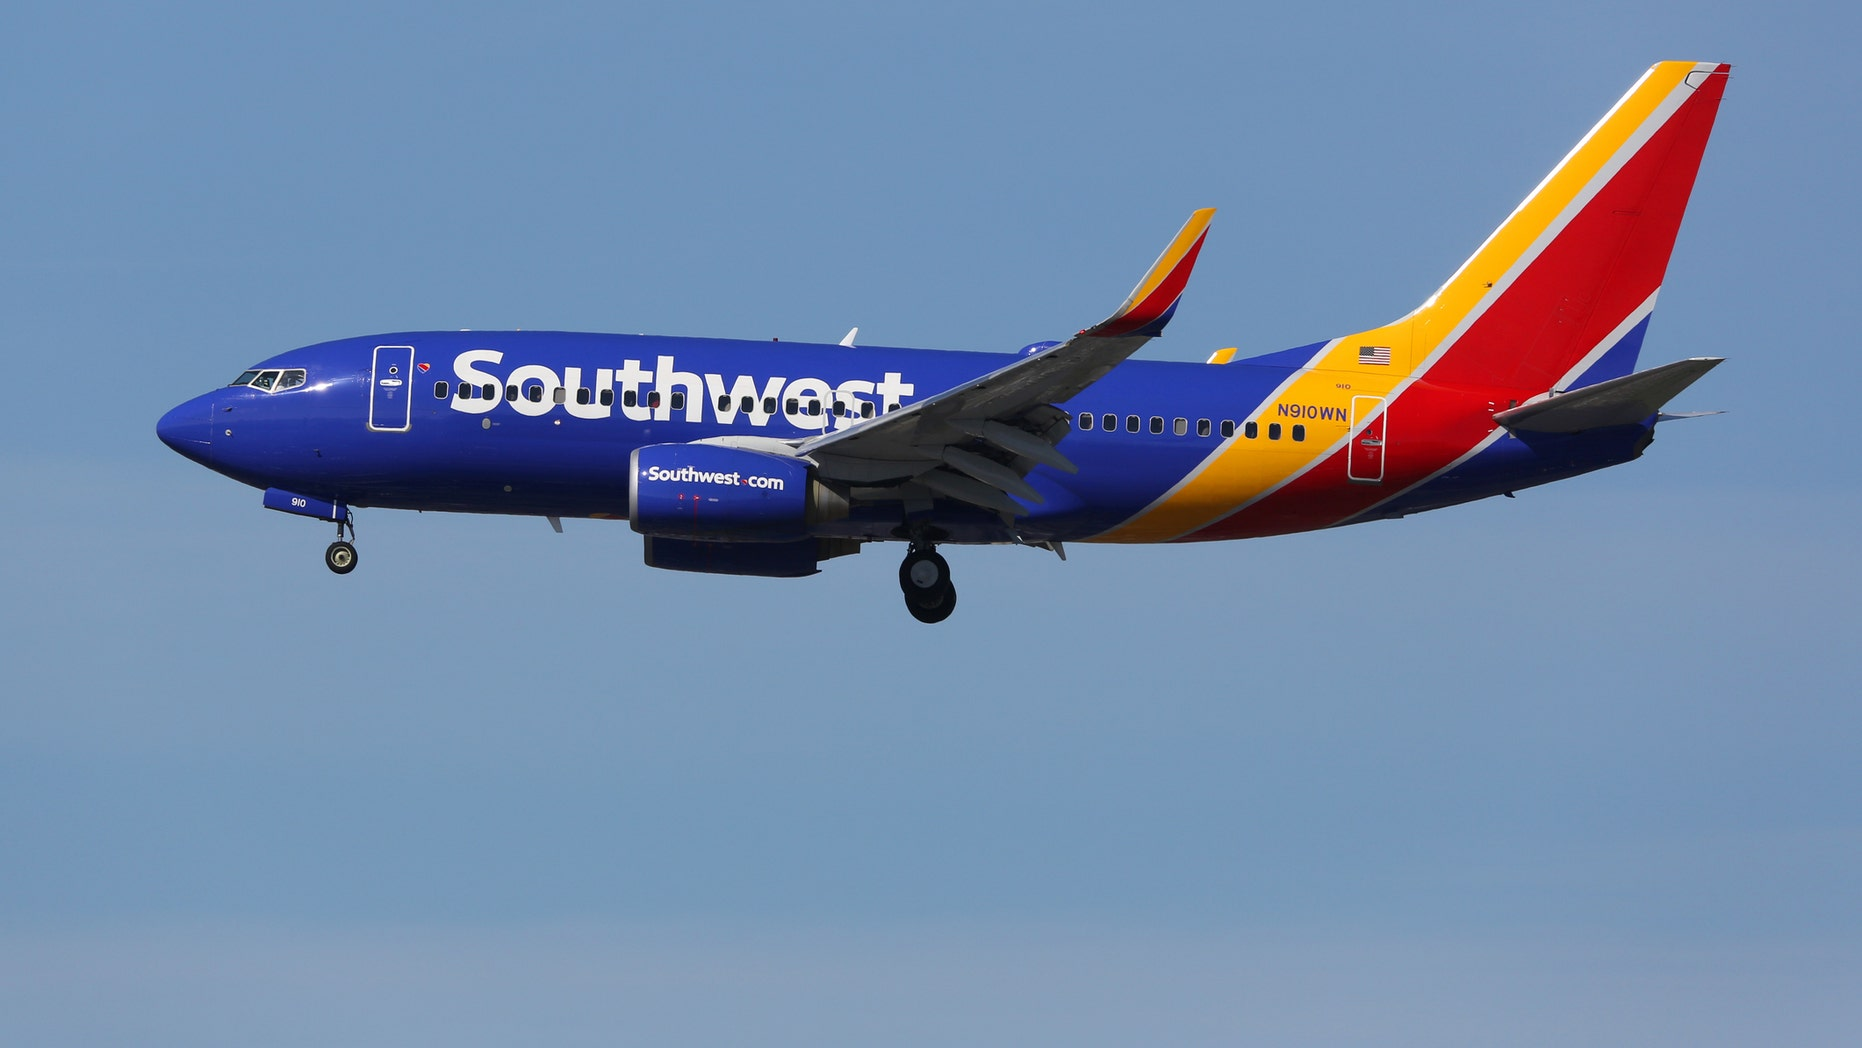 Lanice Powless, a University of Colorado student, was flying to California from Denver International Airport when she said a Southwest Airlines employee informed her that she would not be allowed to bring her pink beta fish, Cassie, onboard with her.